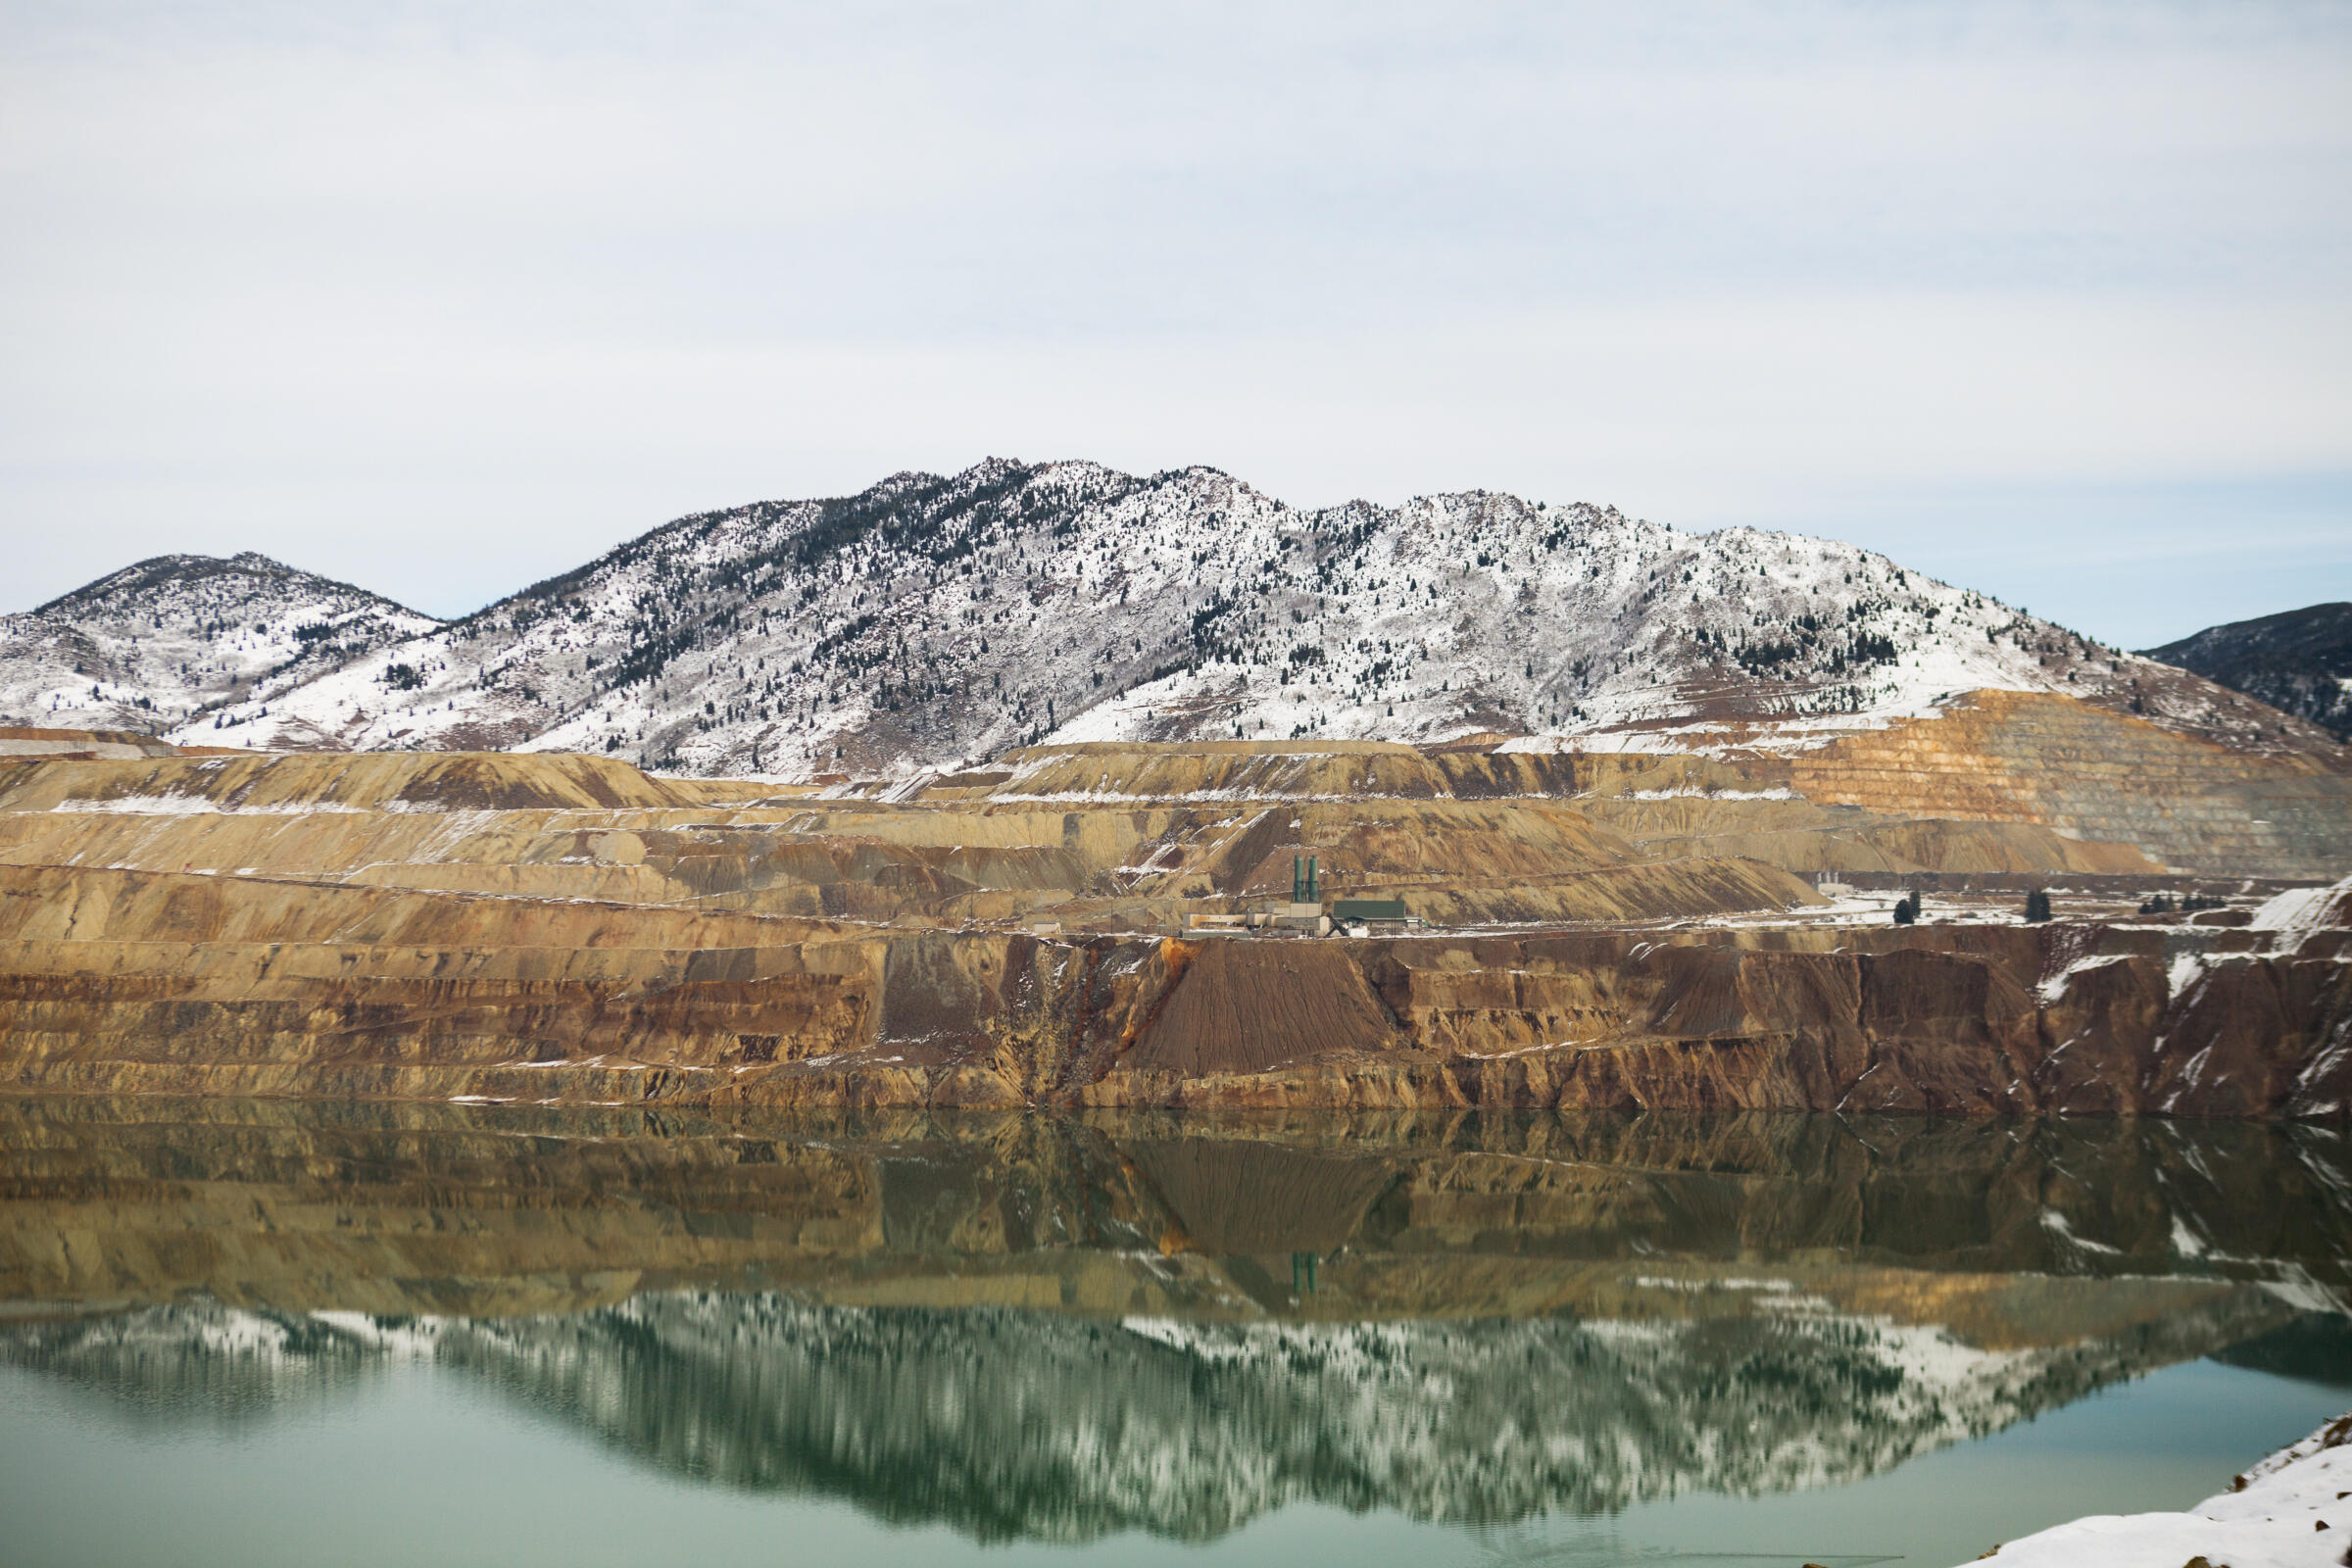 The Berkeley Pit opened in 1955, and Montana Resources has mined and processed copper and molybdenum at the site since 1985. Celia Talbot Tobin